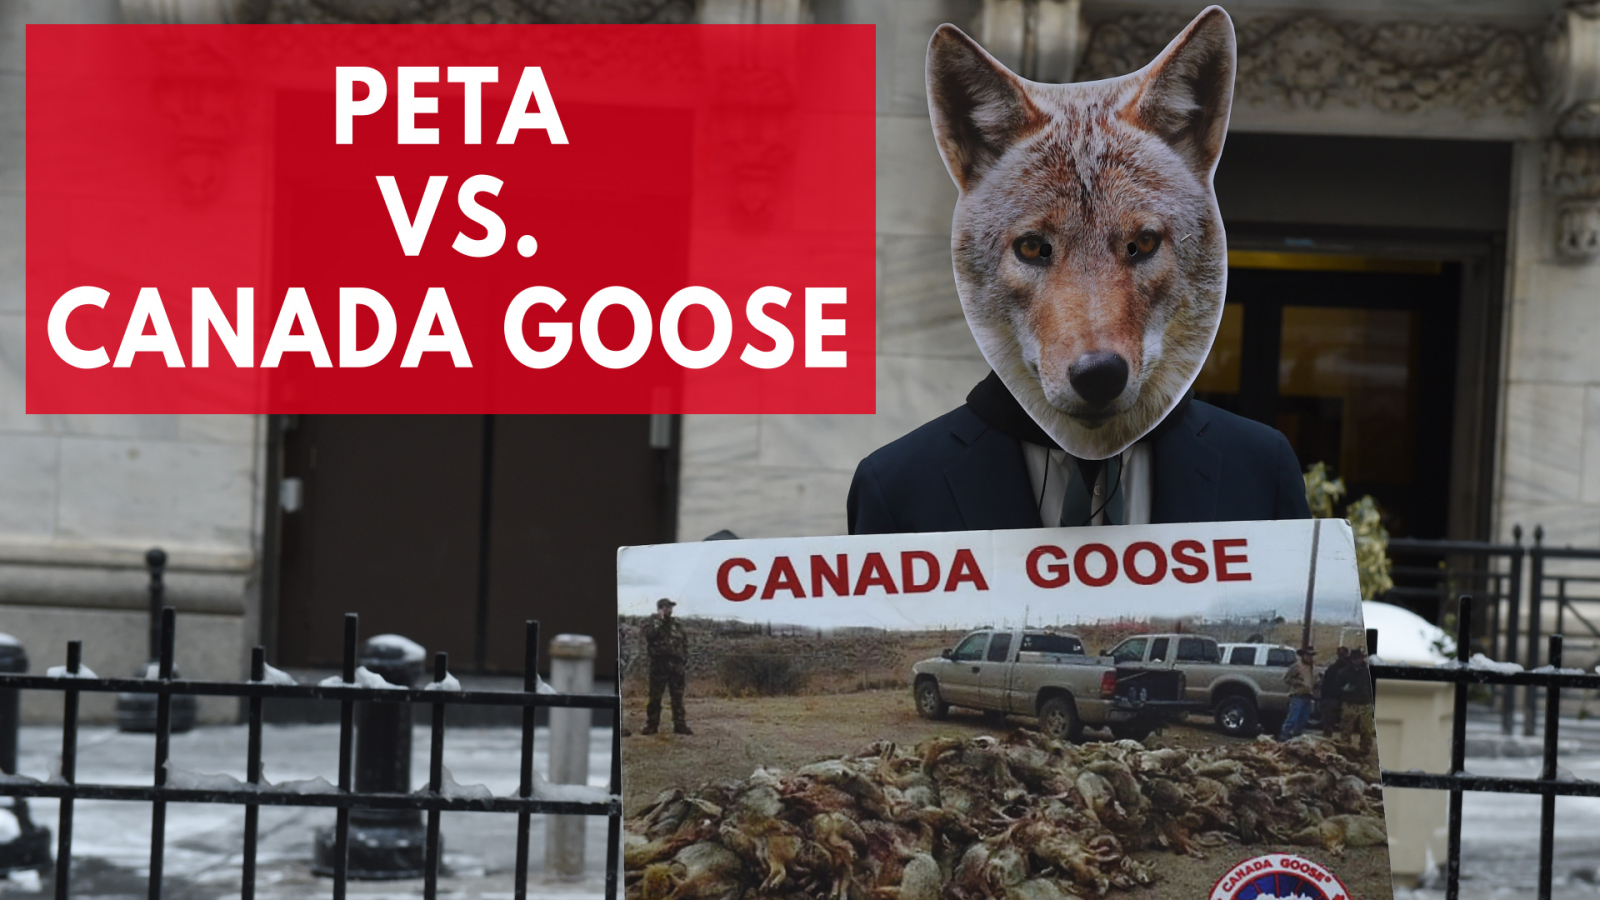 Kate Upton and Canada Goose Partnership Faces Questions from Peta